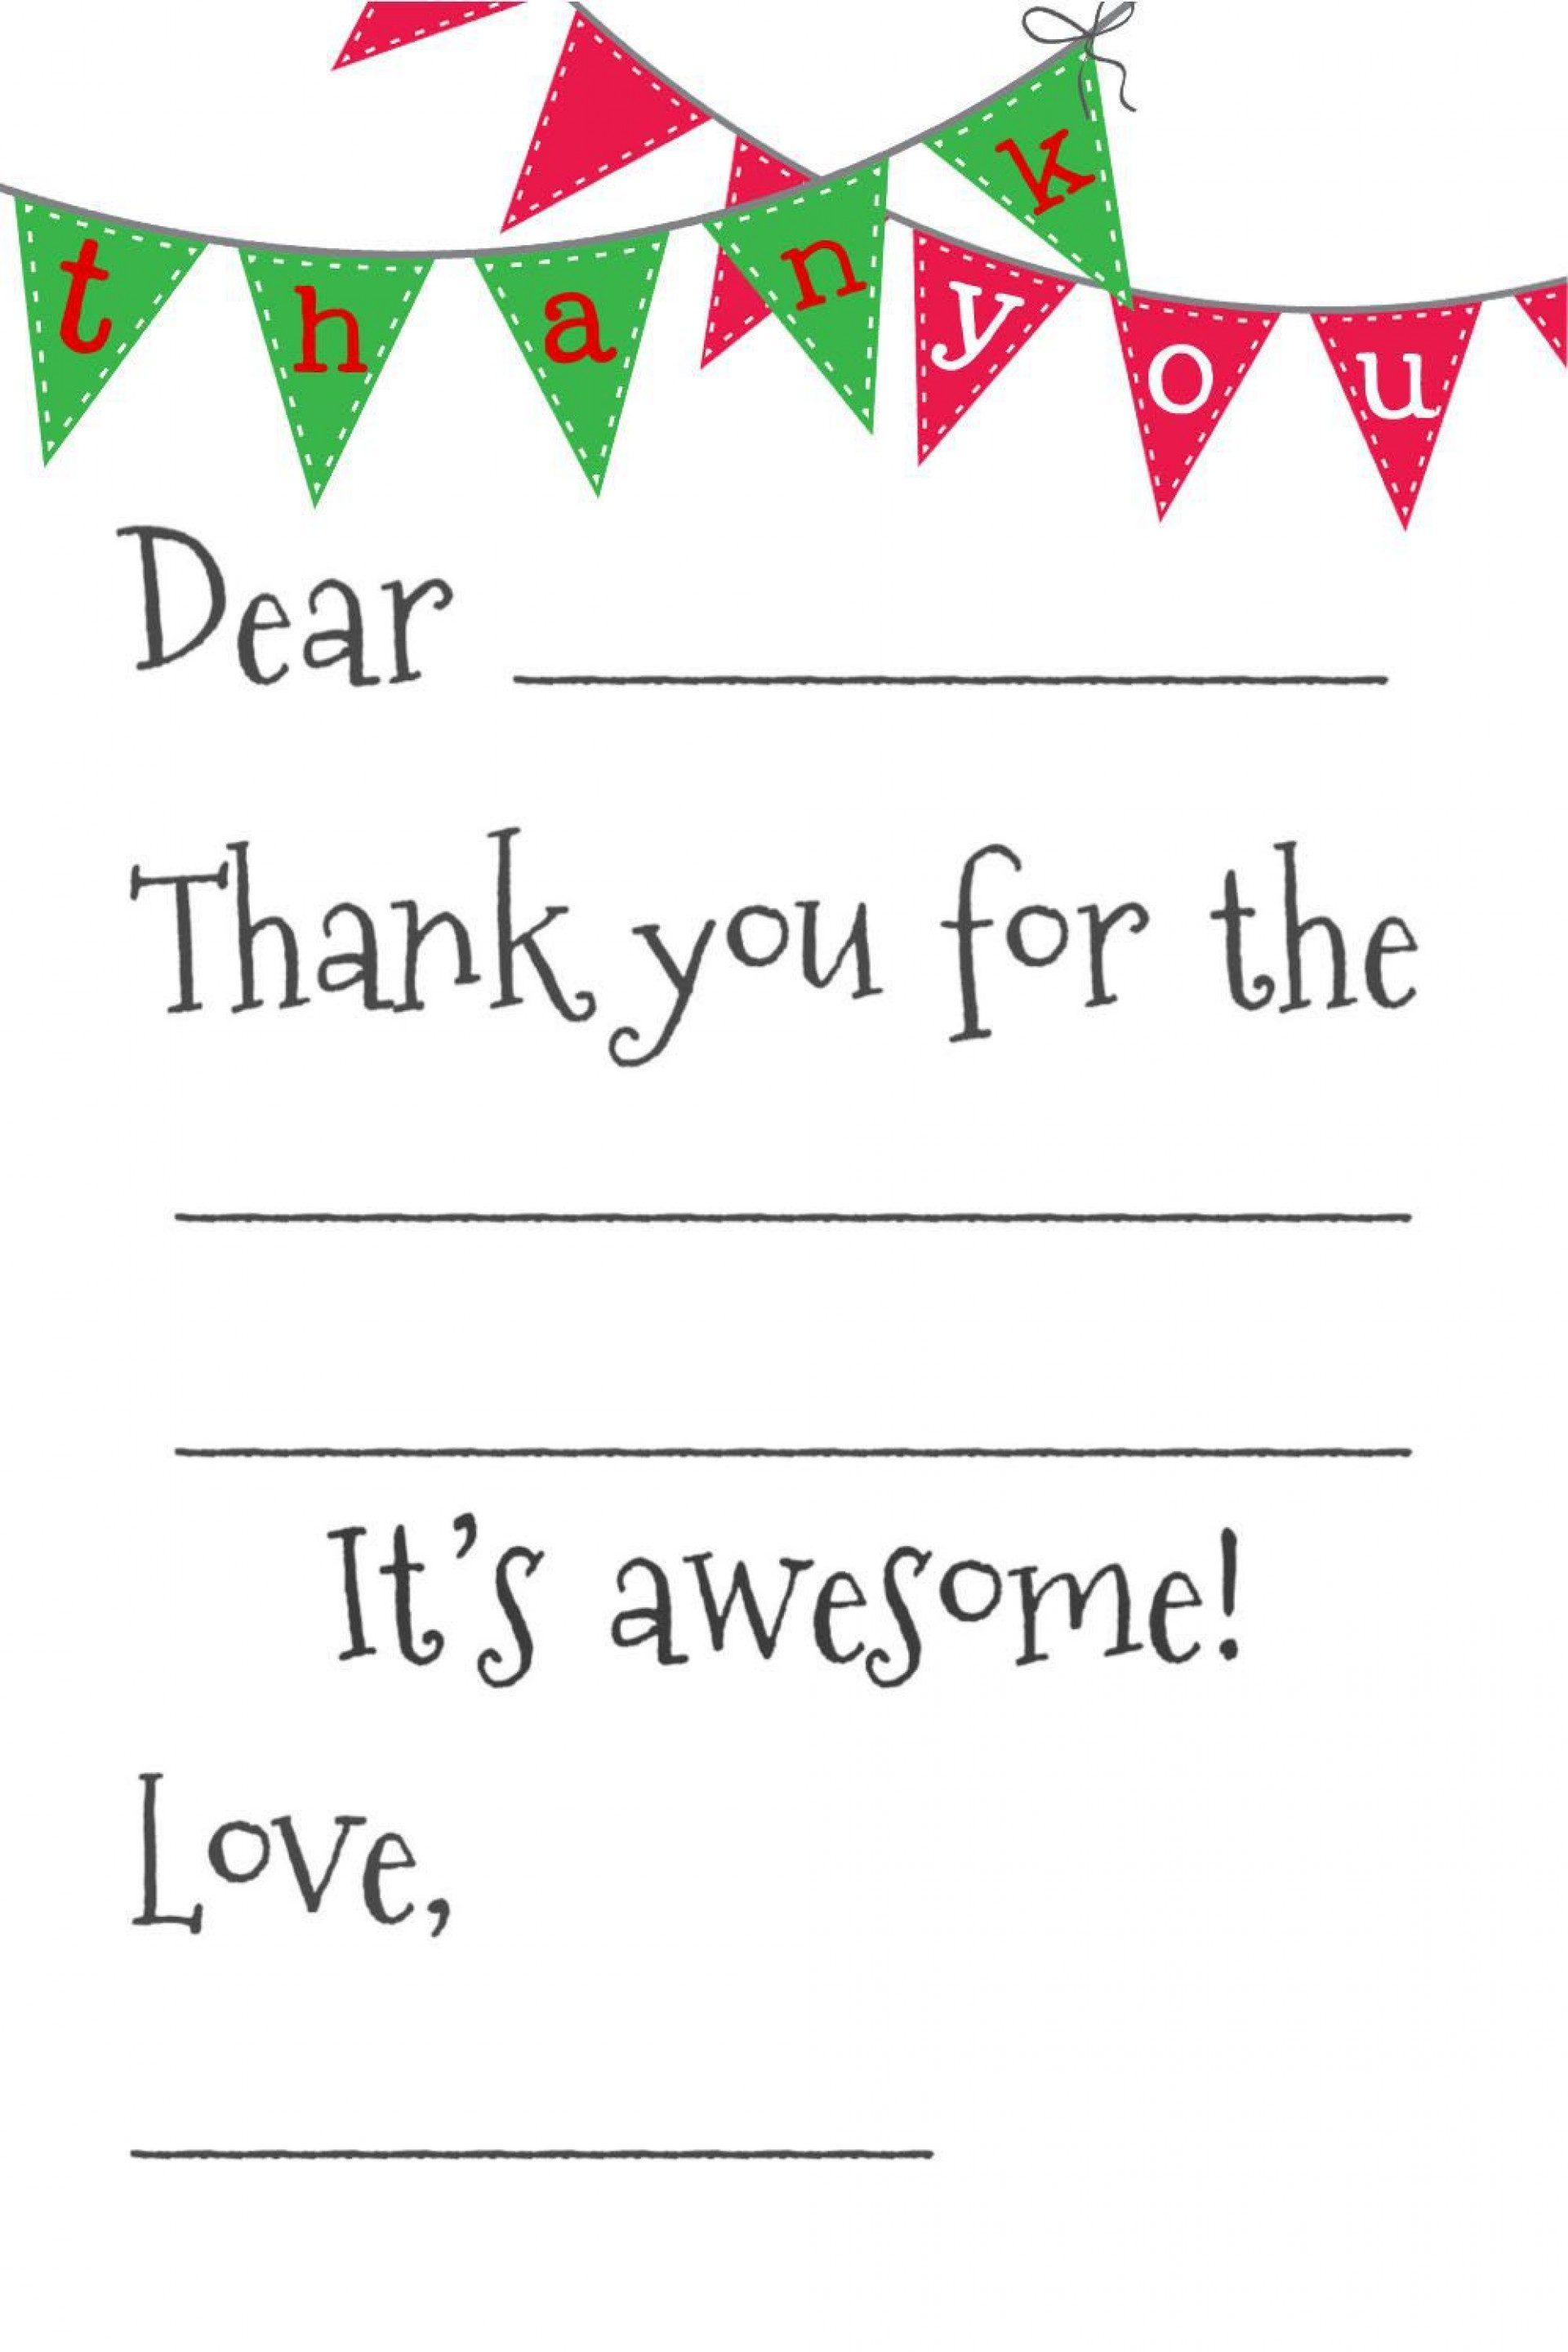 003 Archaicawful Christma Thank You Note Template Free Design  Letter Card1920